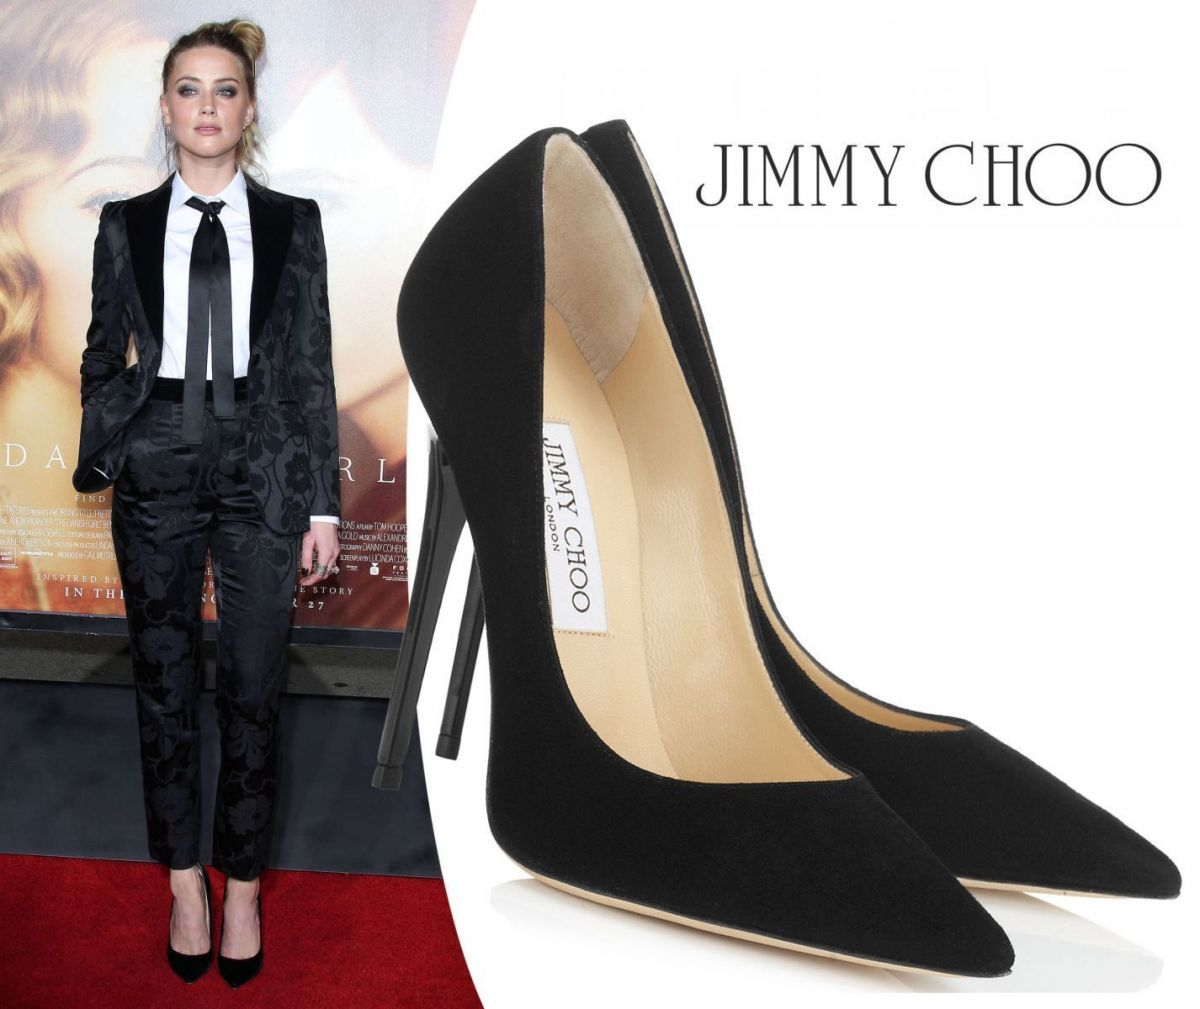 Туфли недели: Jimmy Choo